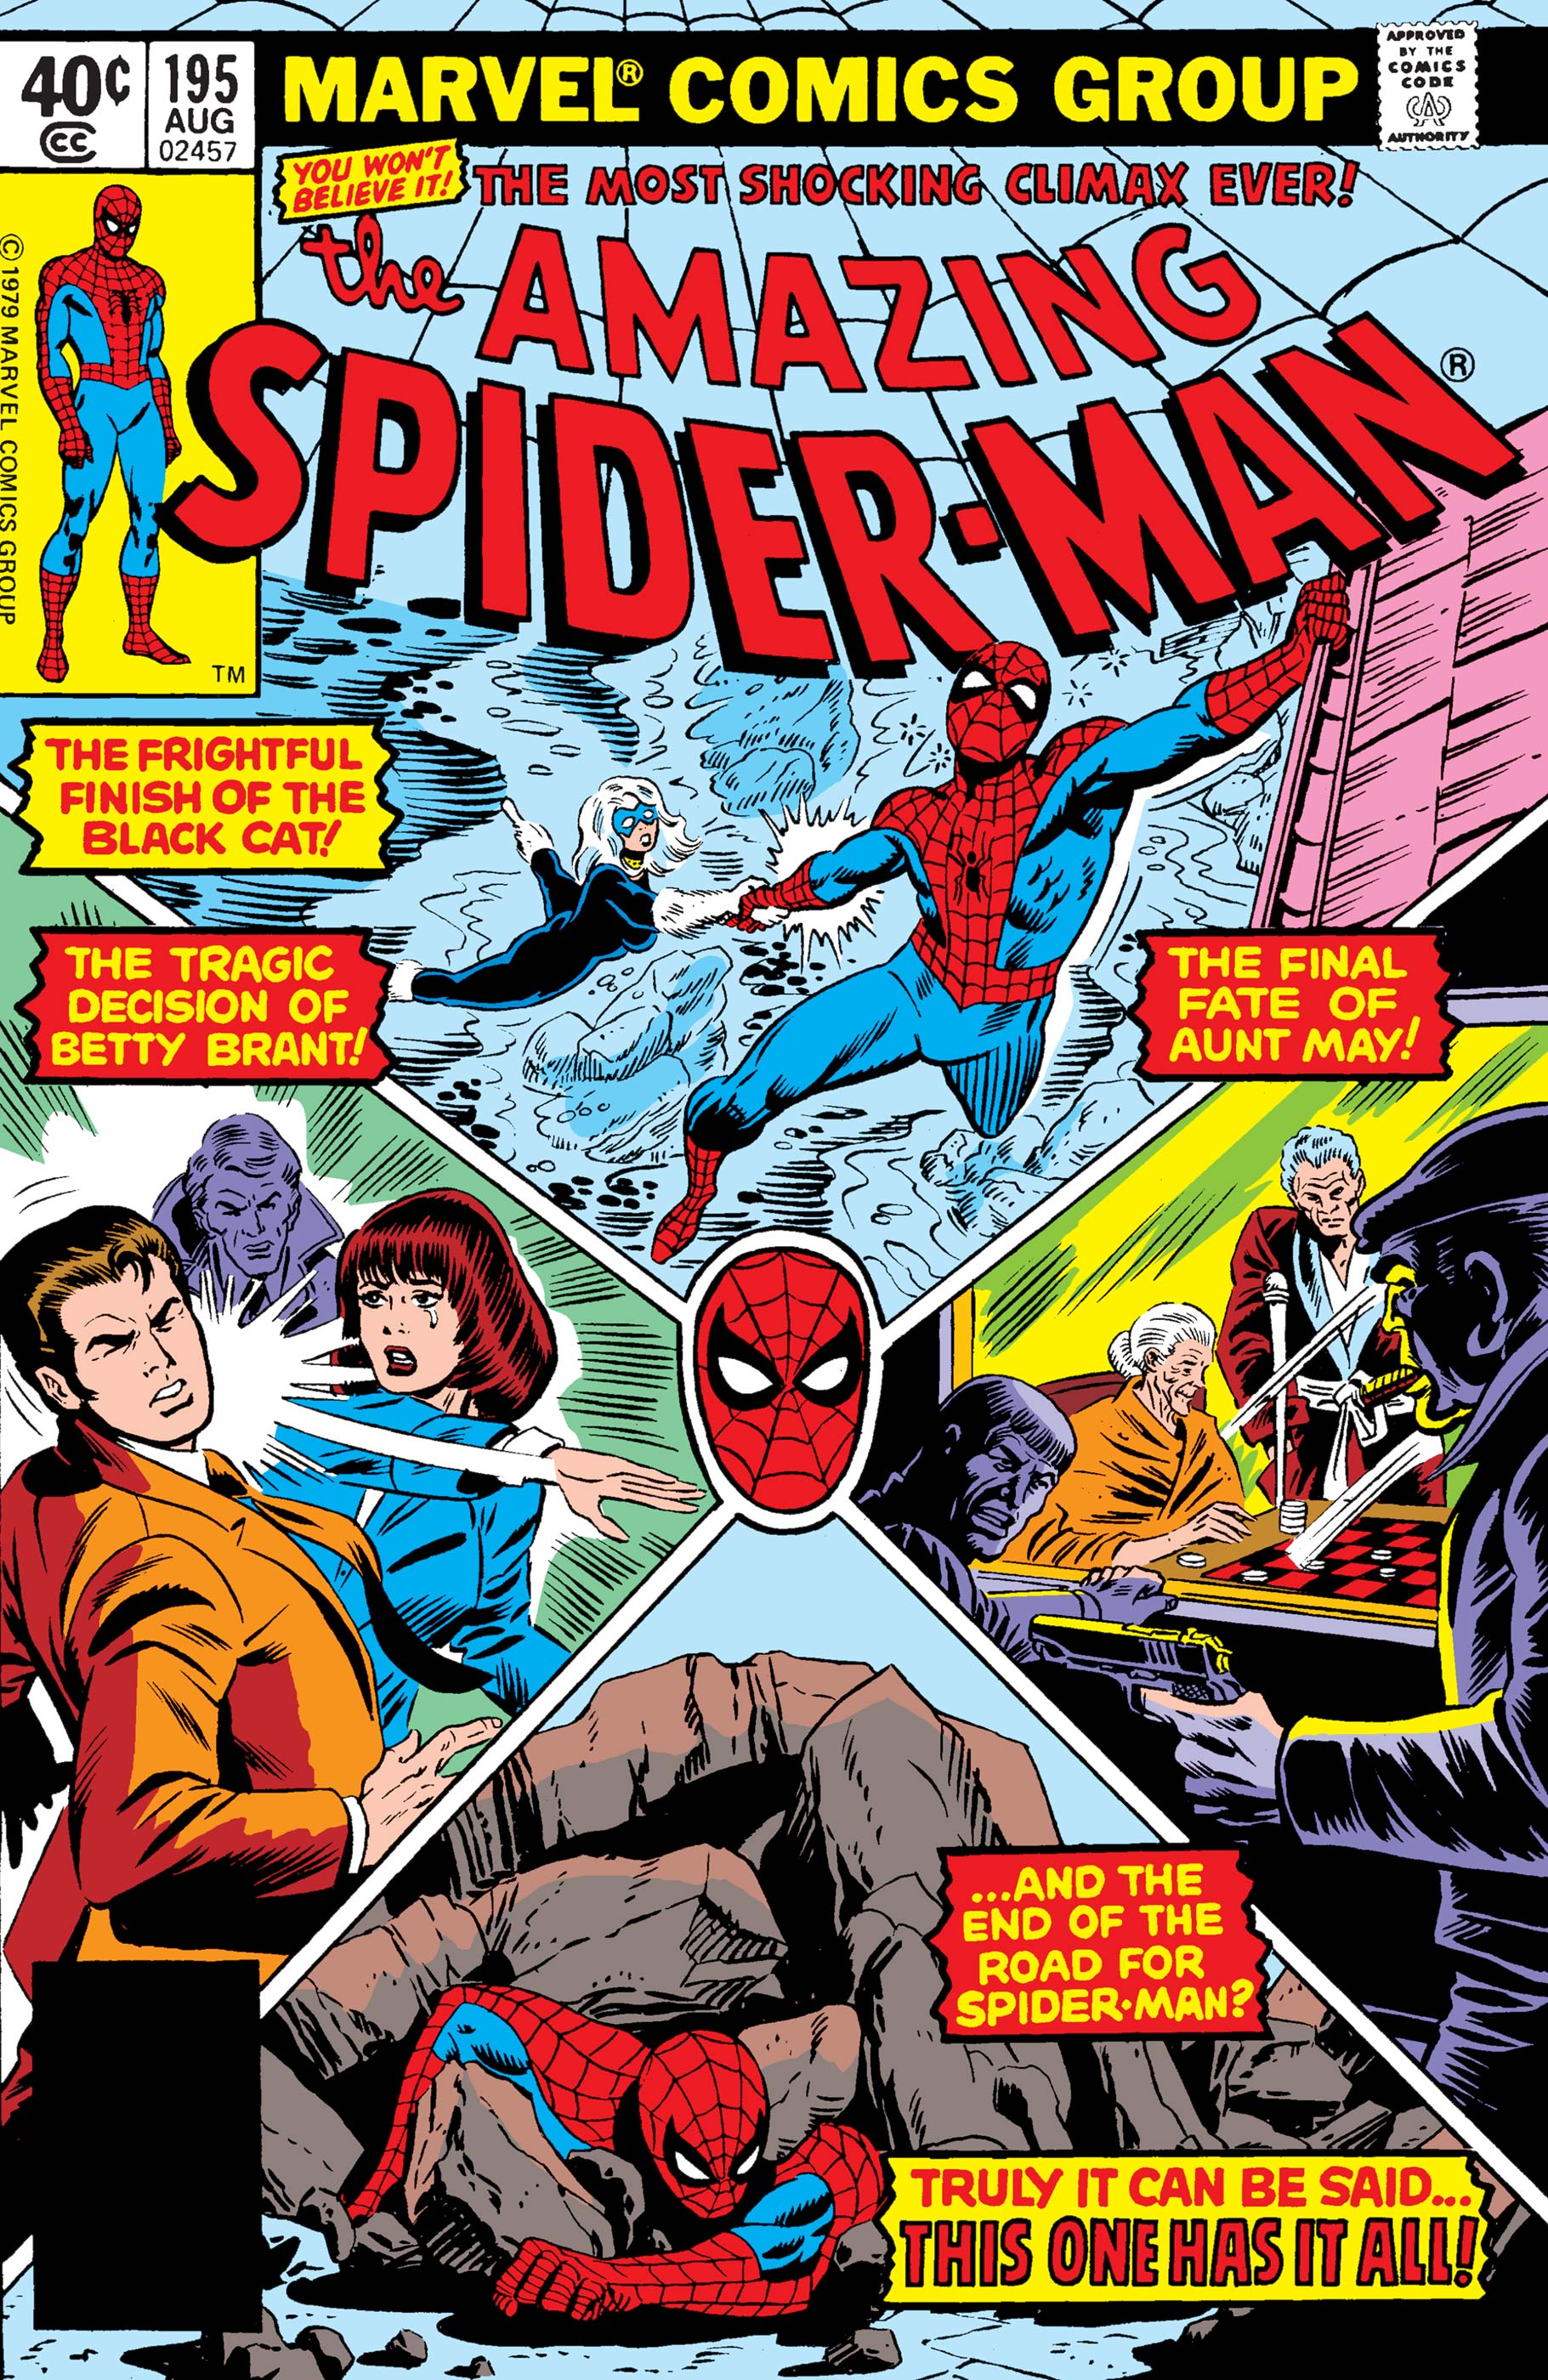 The Amazing Spider-Man (1963) #195